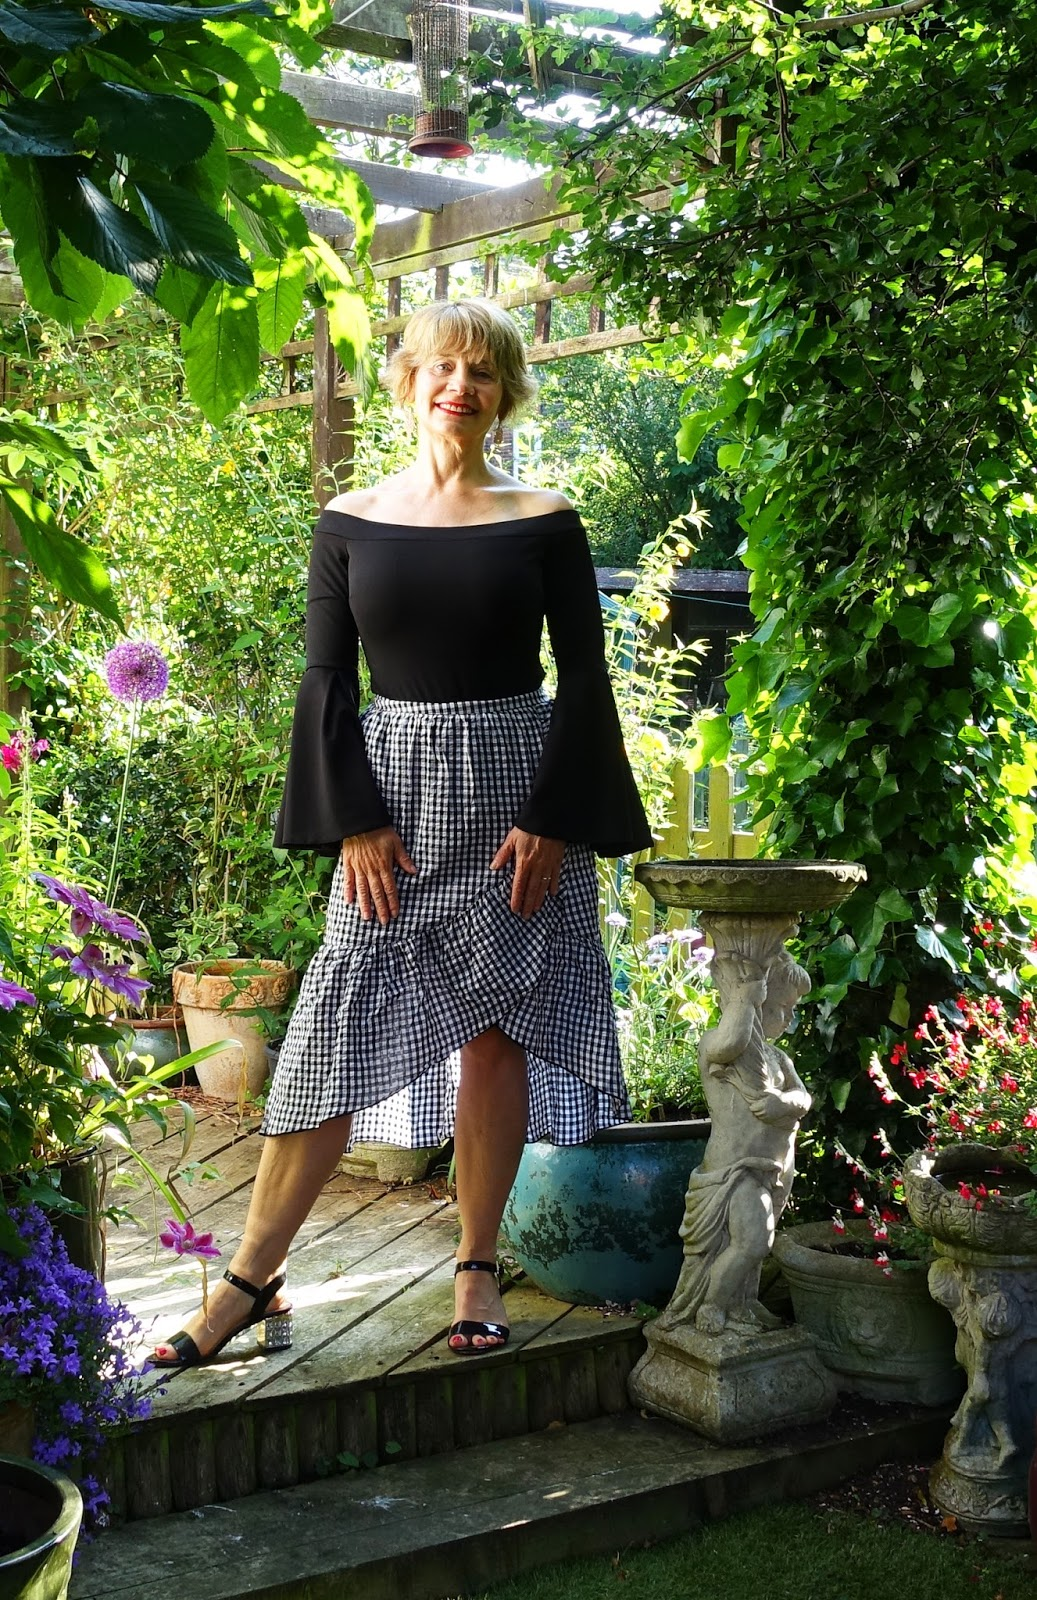 23e66069cc43 Embellished heels from Dune go well with a flamenco inspired gingham skirt  · Great tiering on this Mango gingham skirt worn with black sandals and  Bardot ...